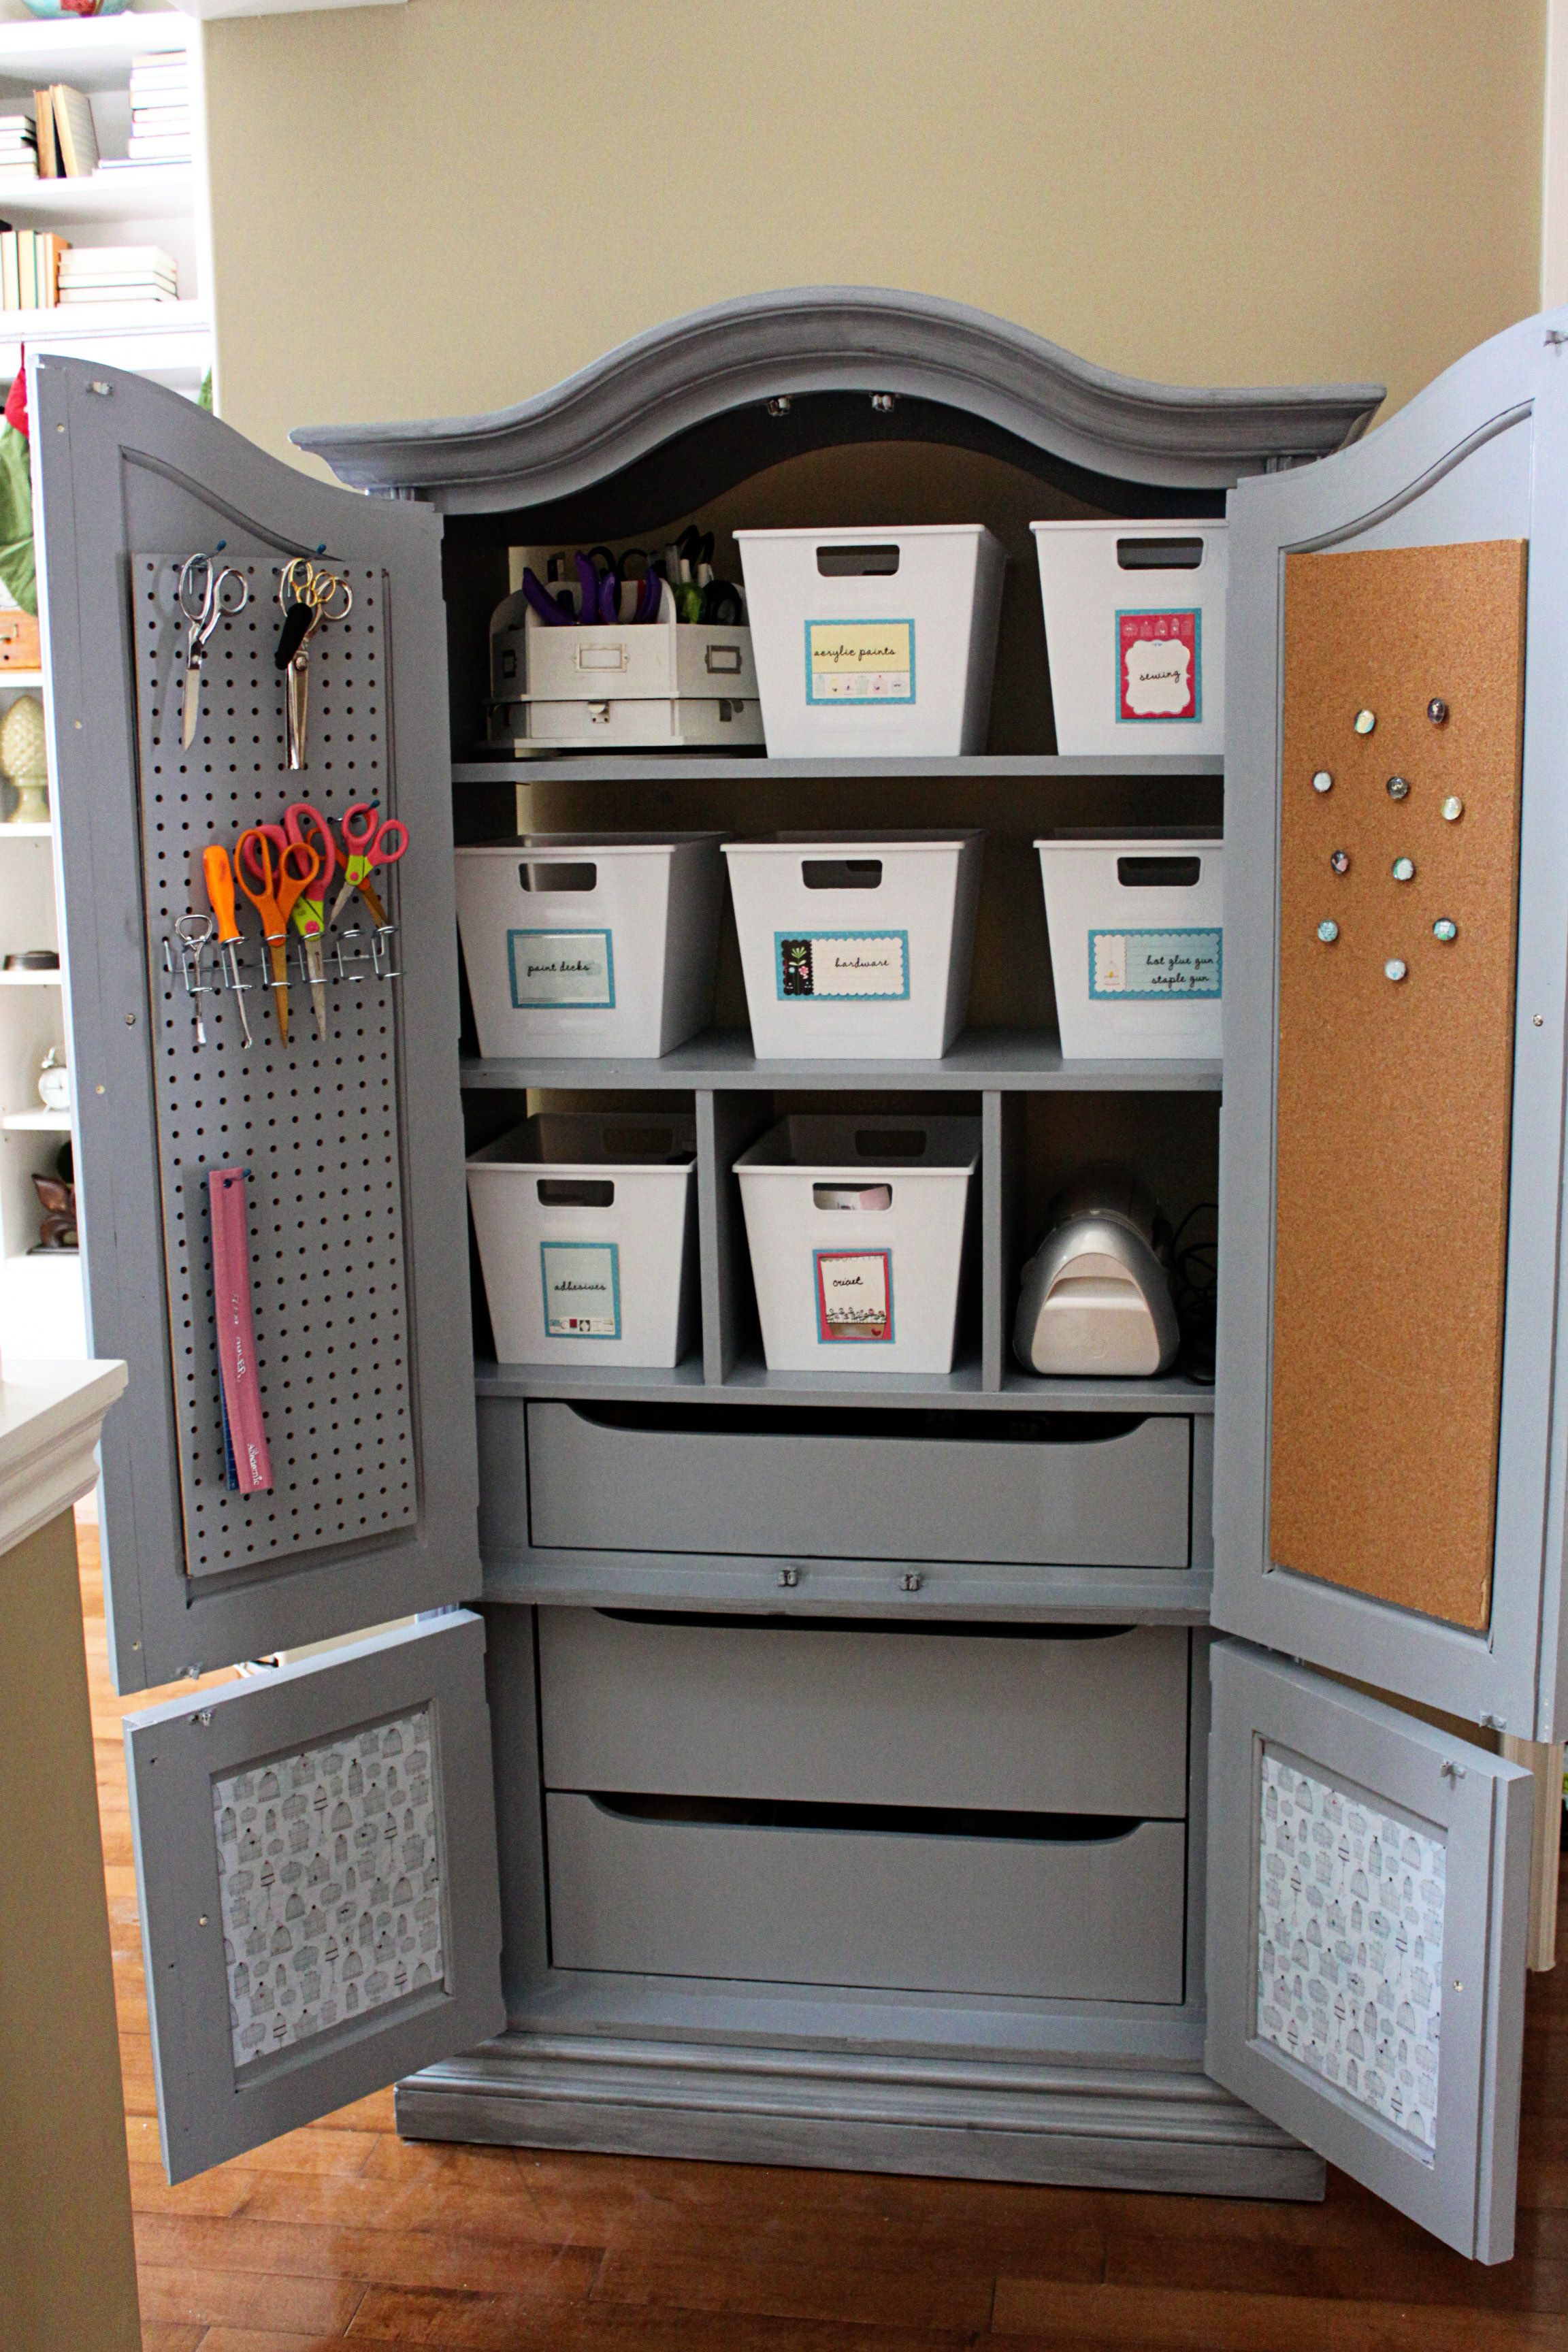 Diy craft room furniture - Find This Pin And More On Organize Your Craft Room